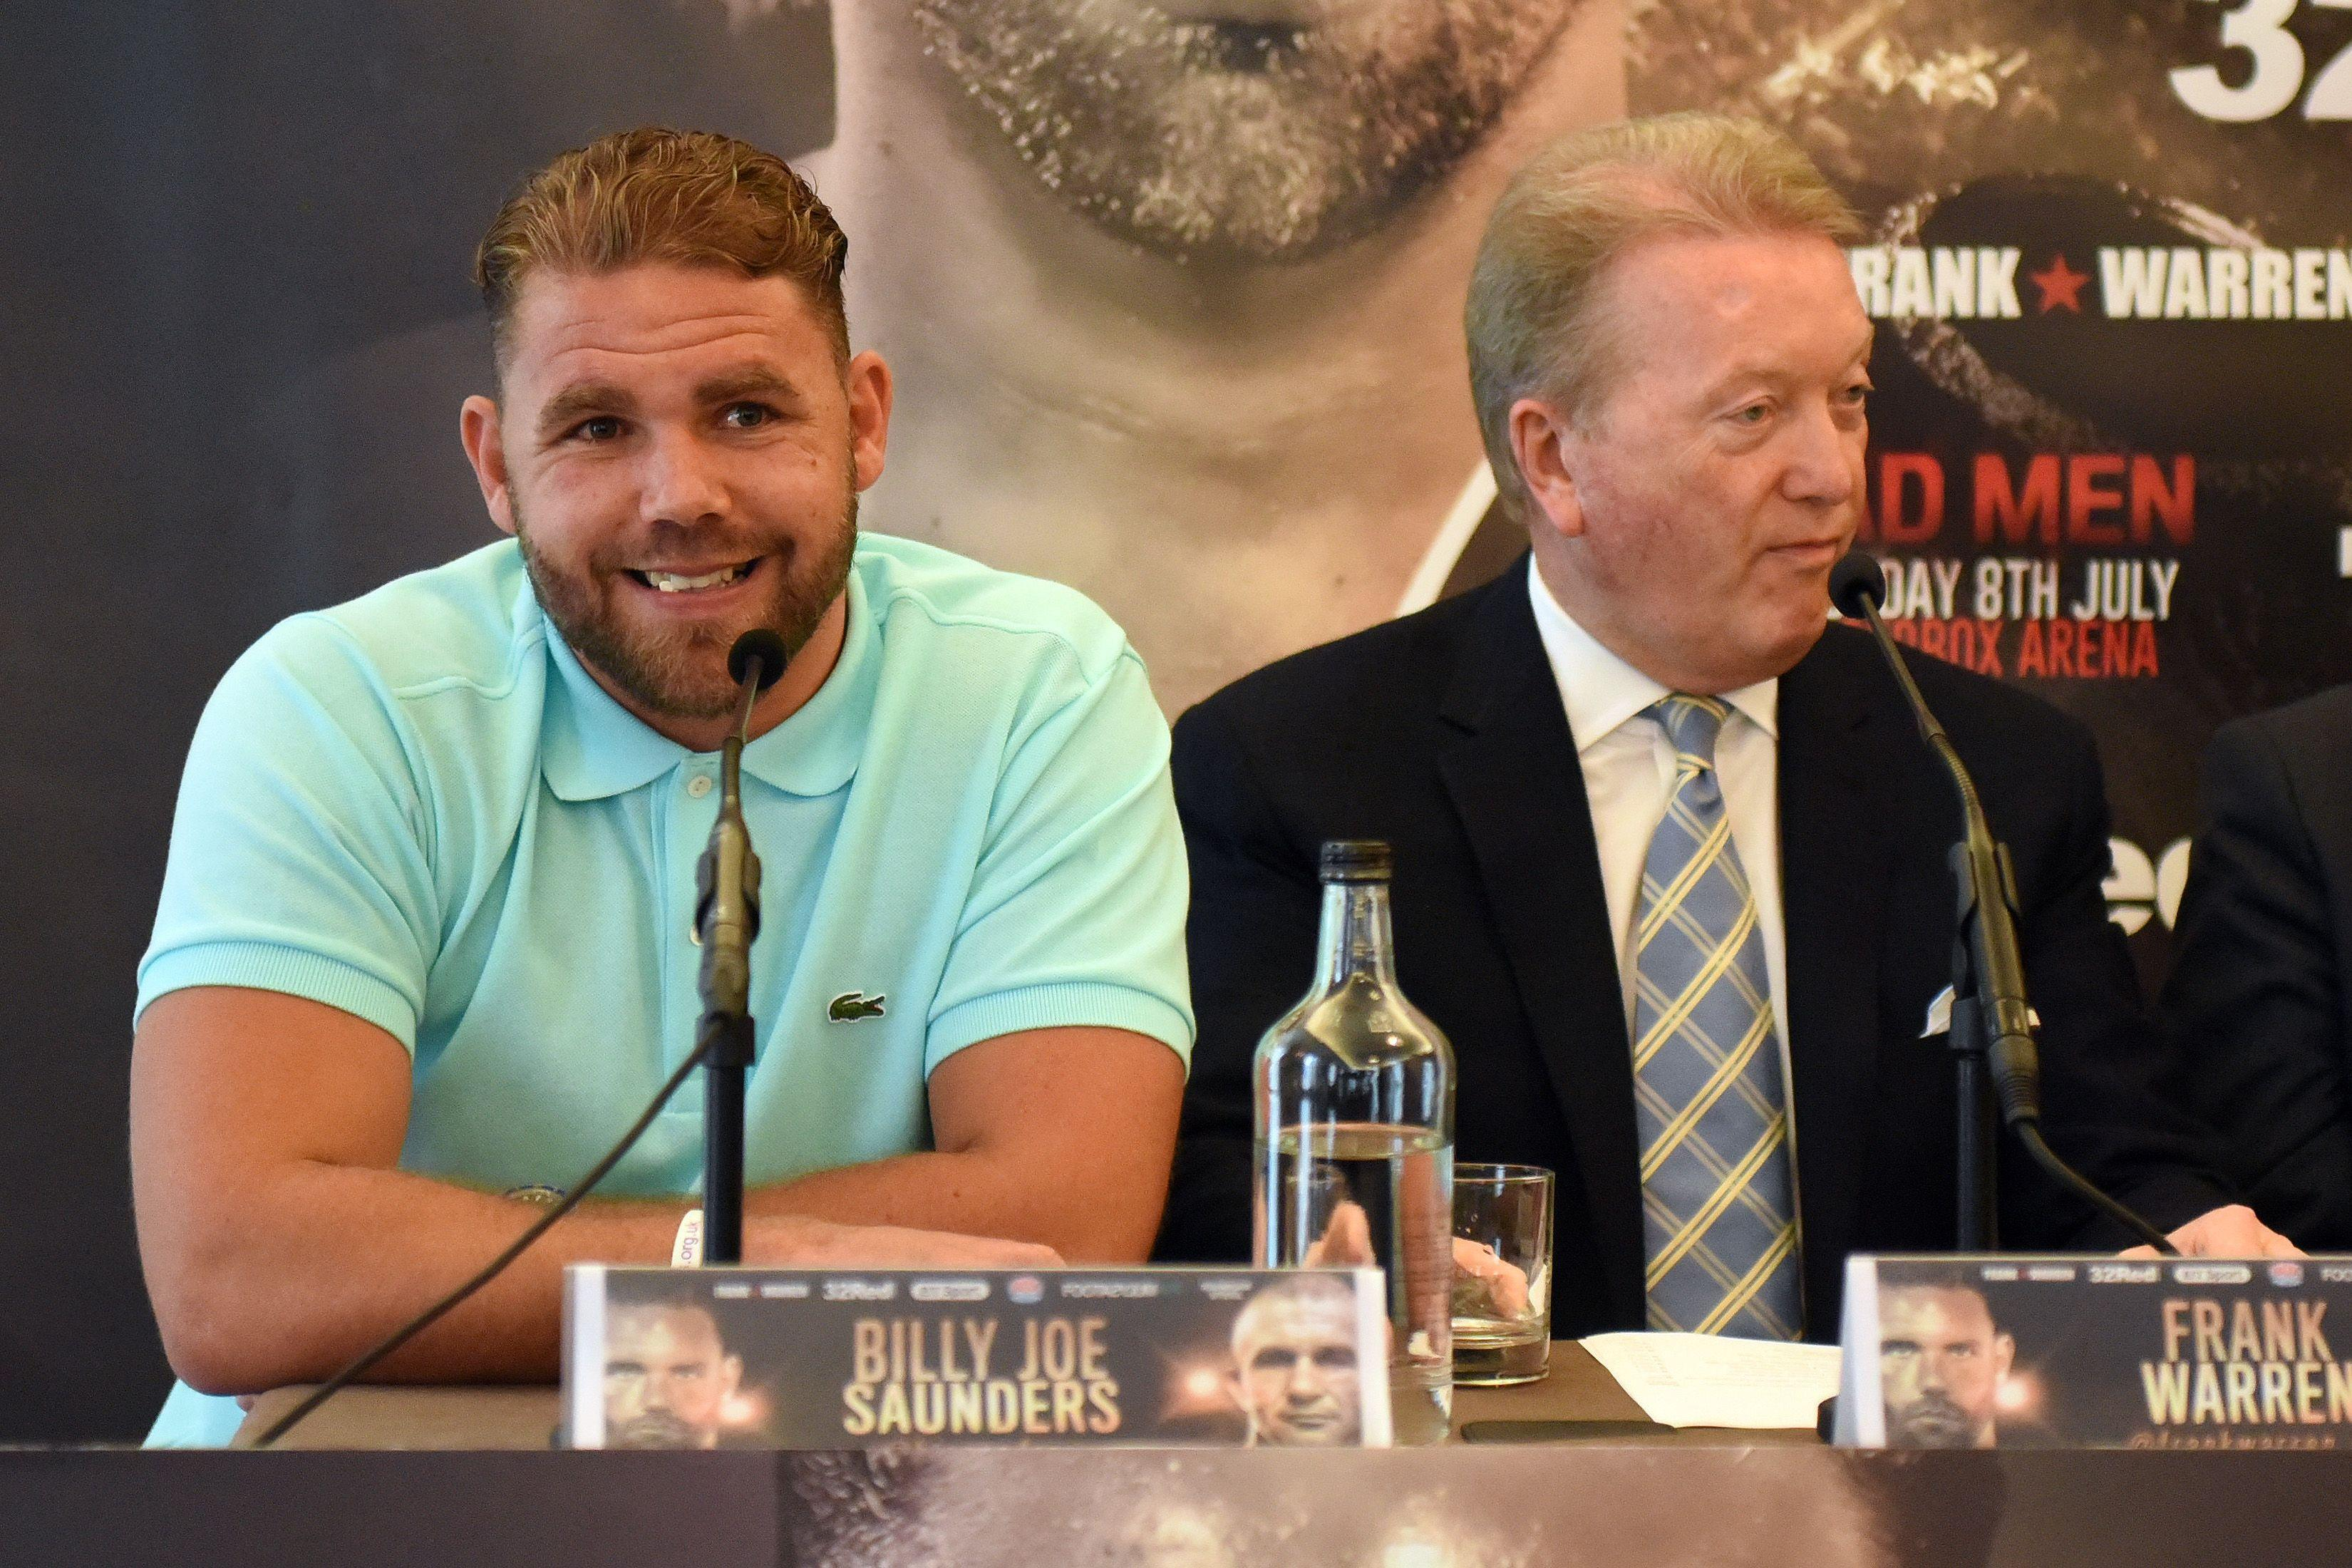 Frank Warren is furious at the way Billy Joe Saunders was dealt with